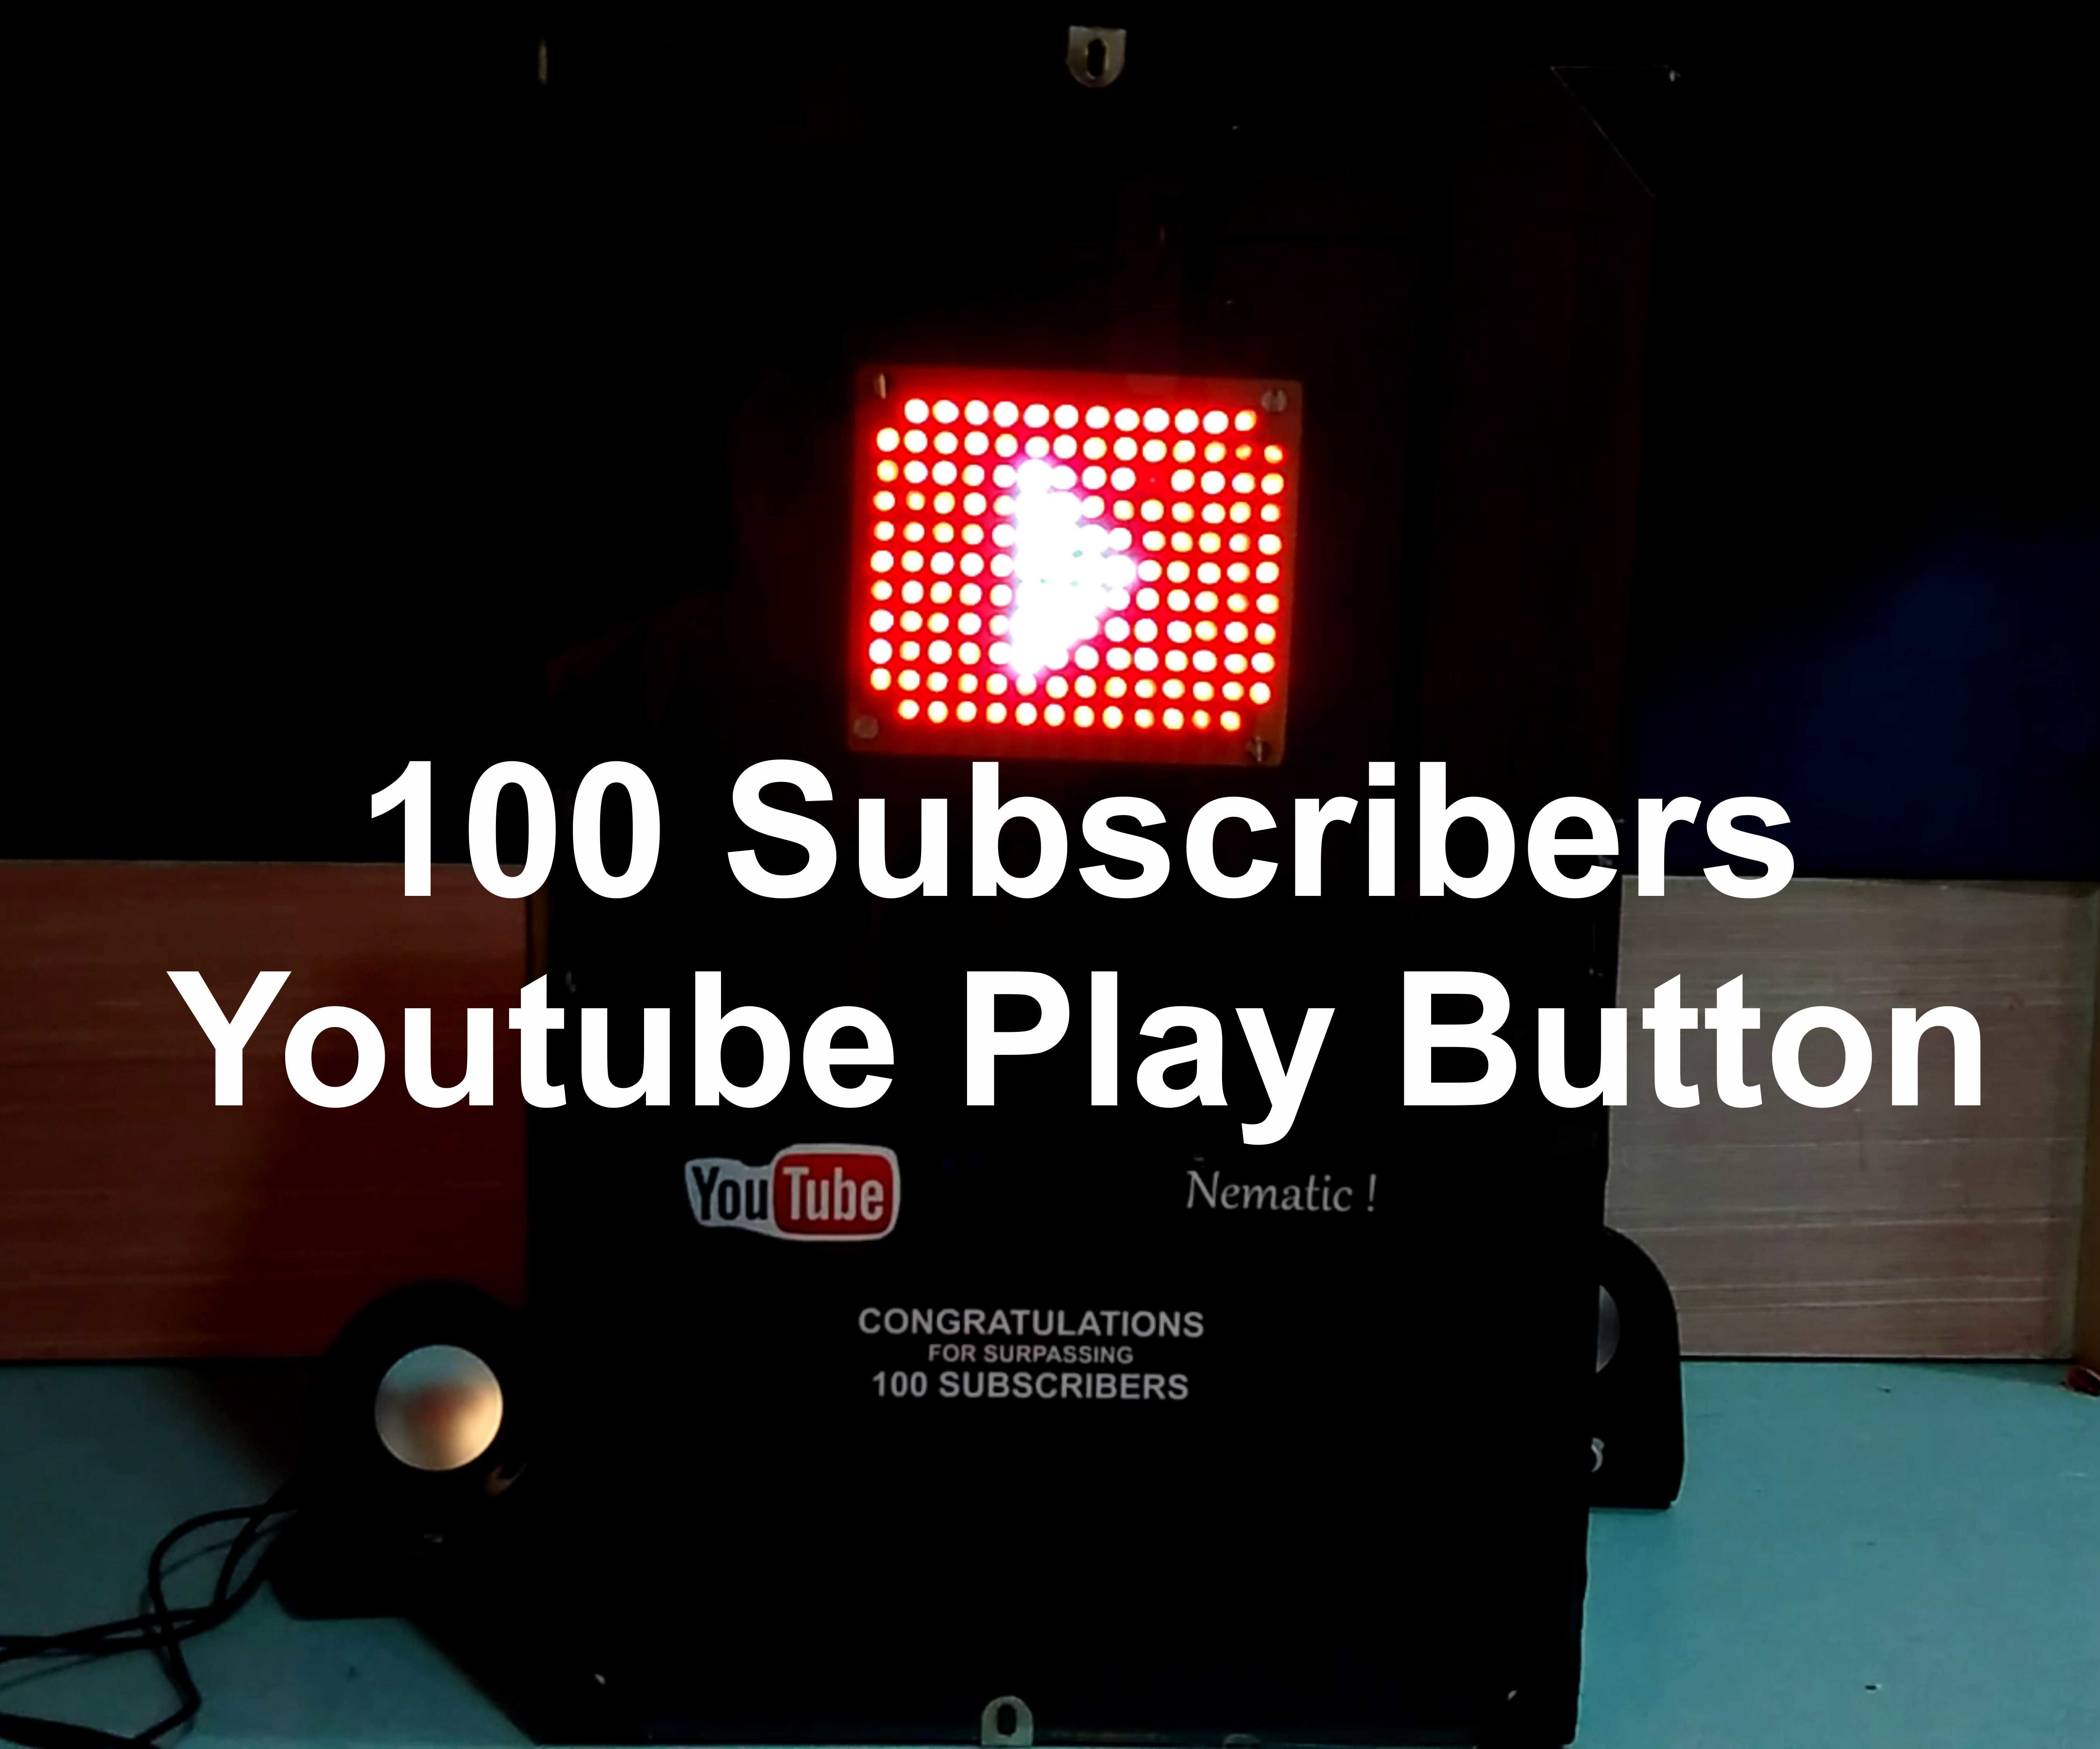 100 Subscribers Youtube Play Button !